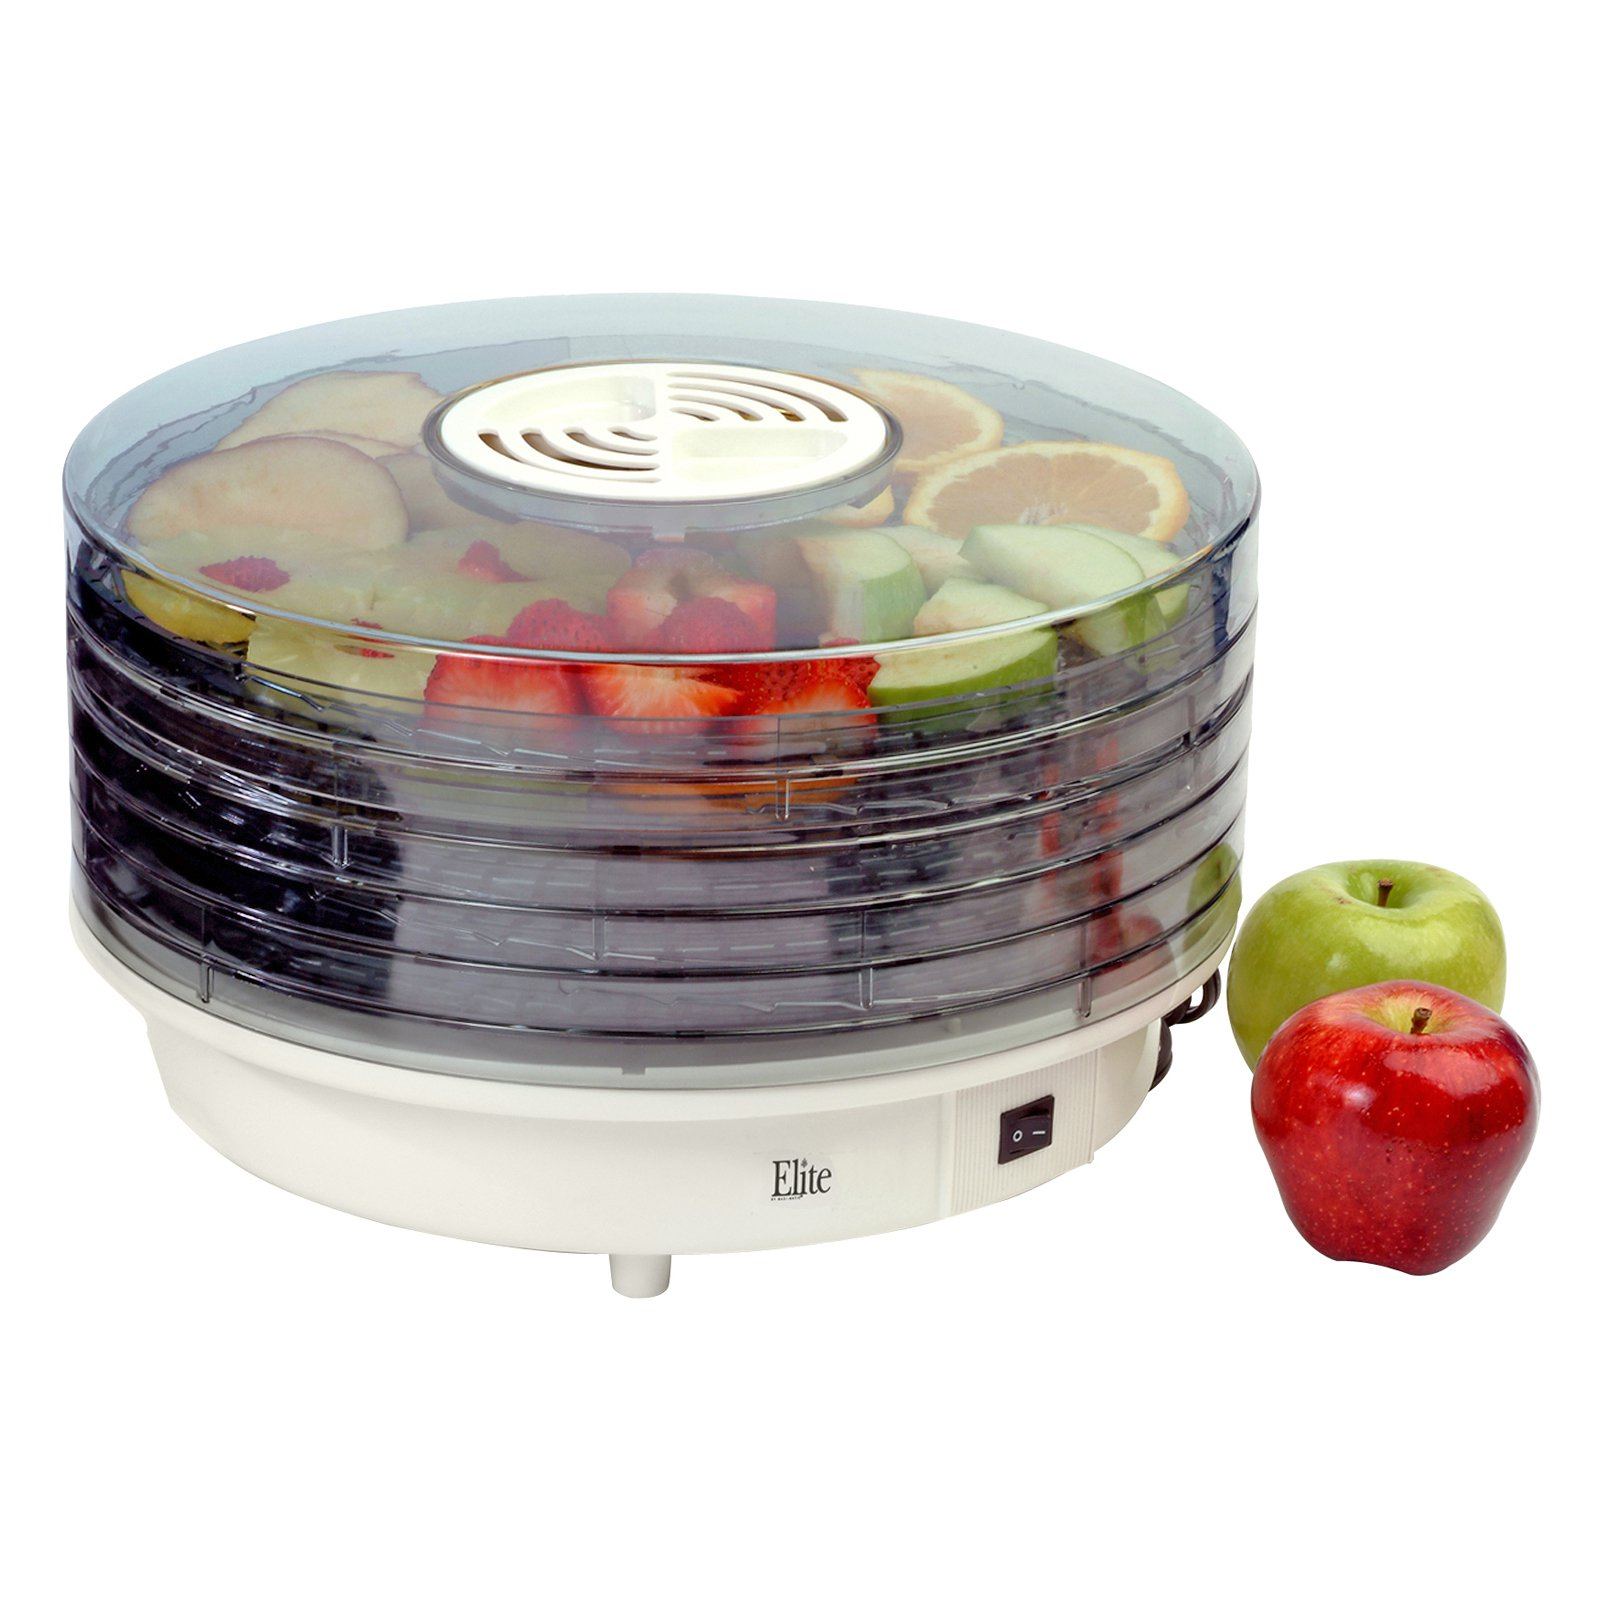 Maxi Matic Elite Gourmet 5-Tray Rotating Food Dehydrator, White by Maxi Matic